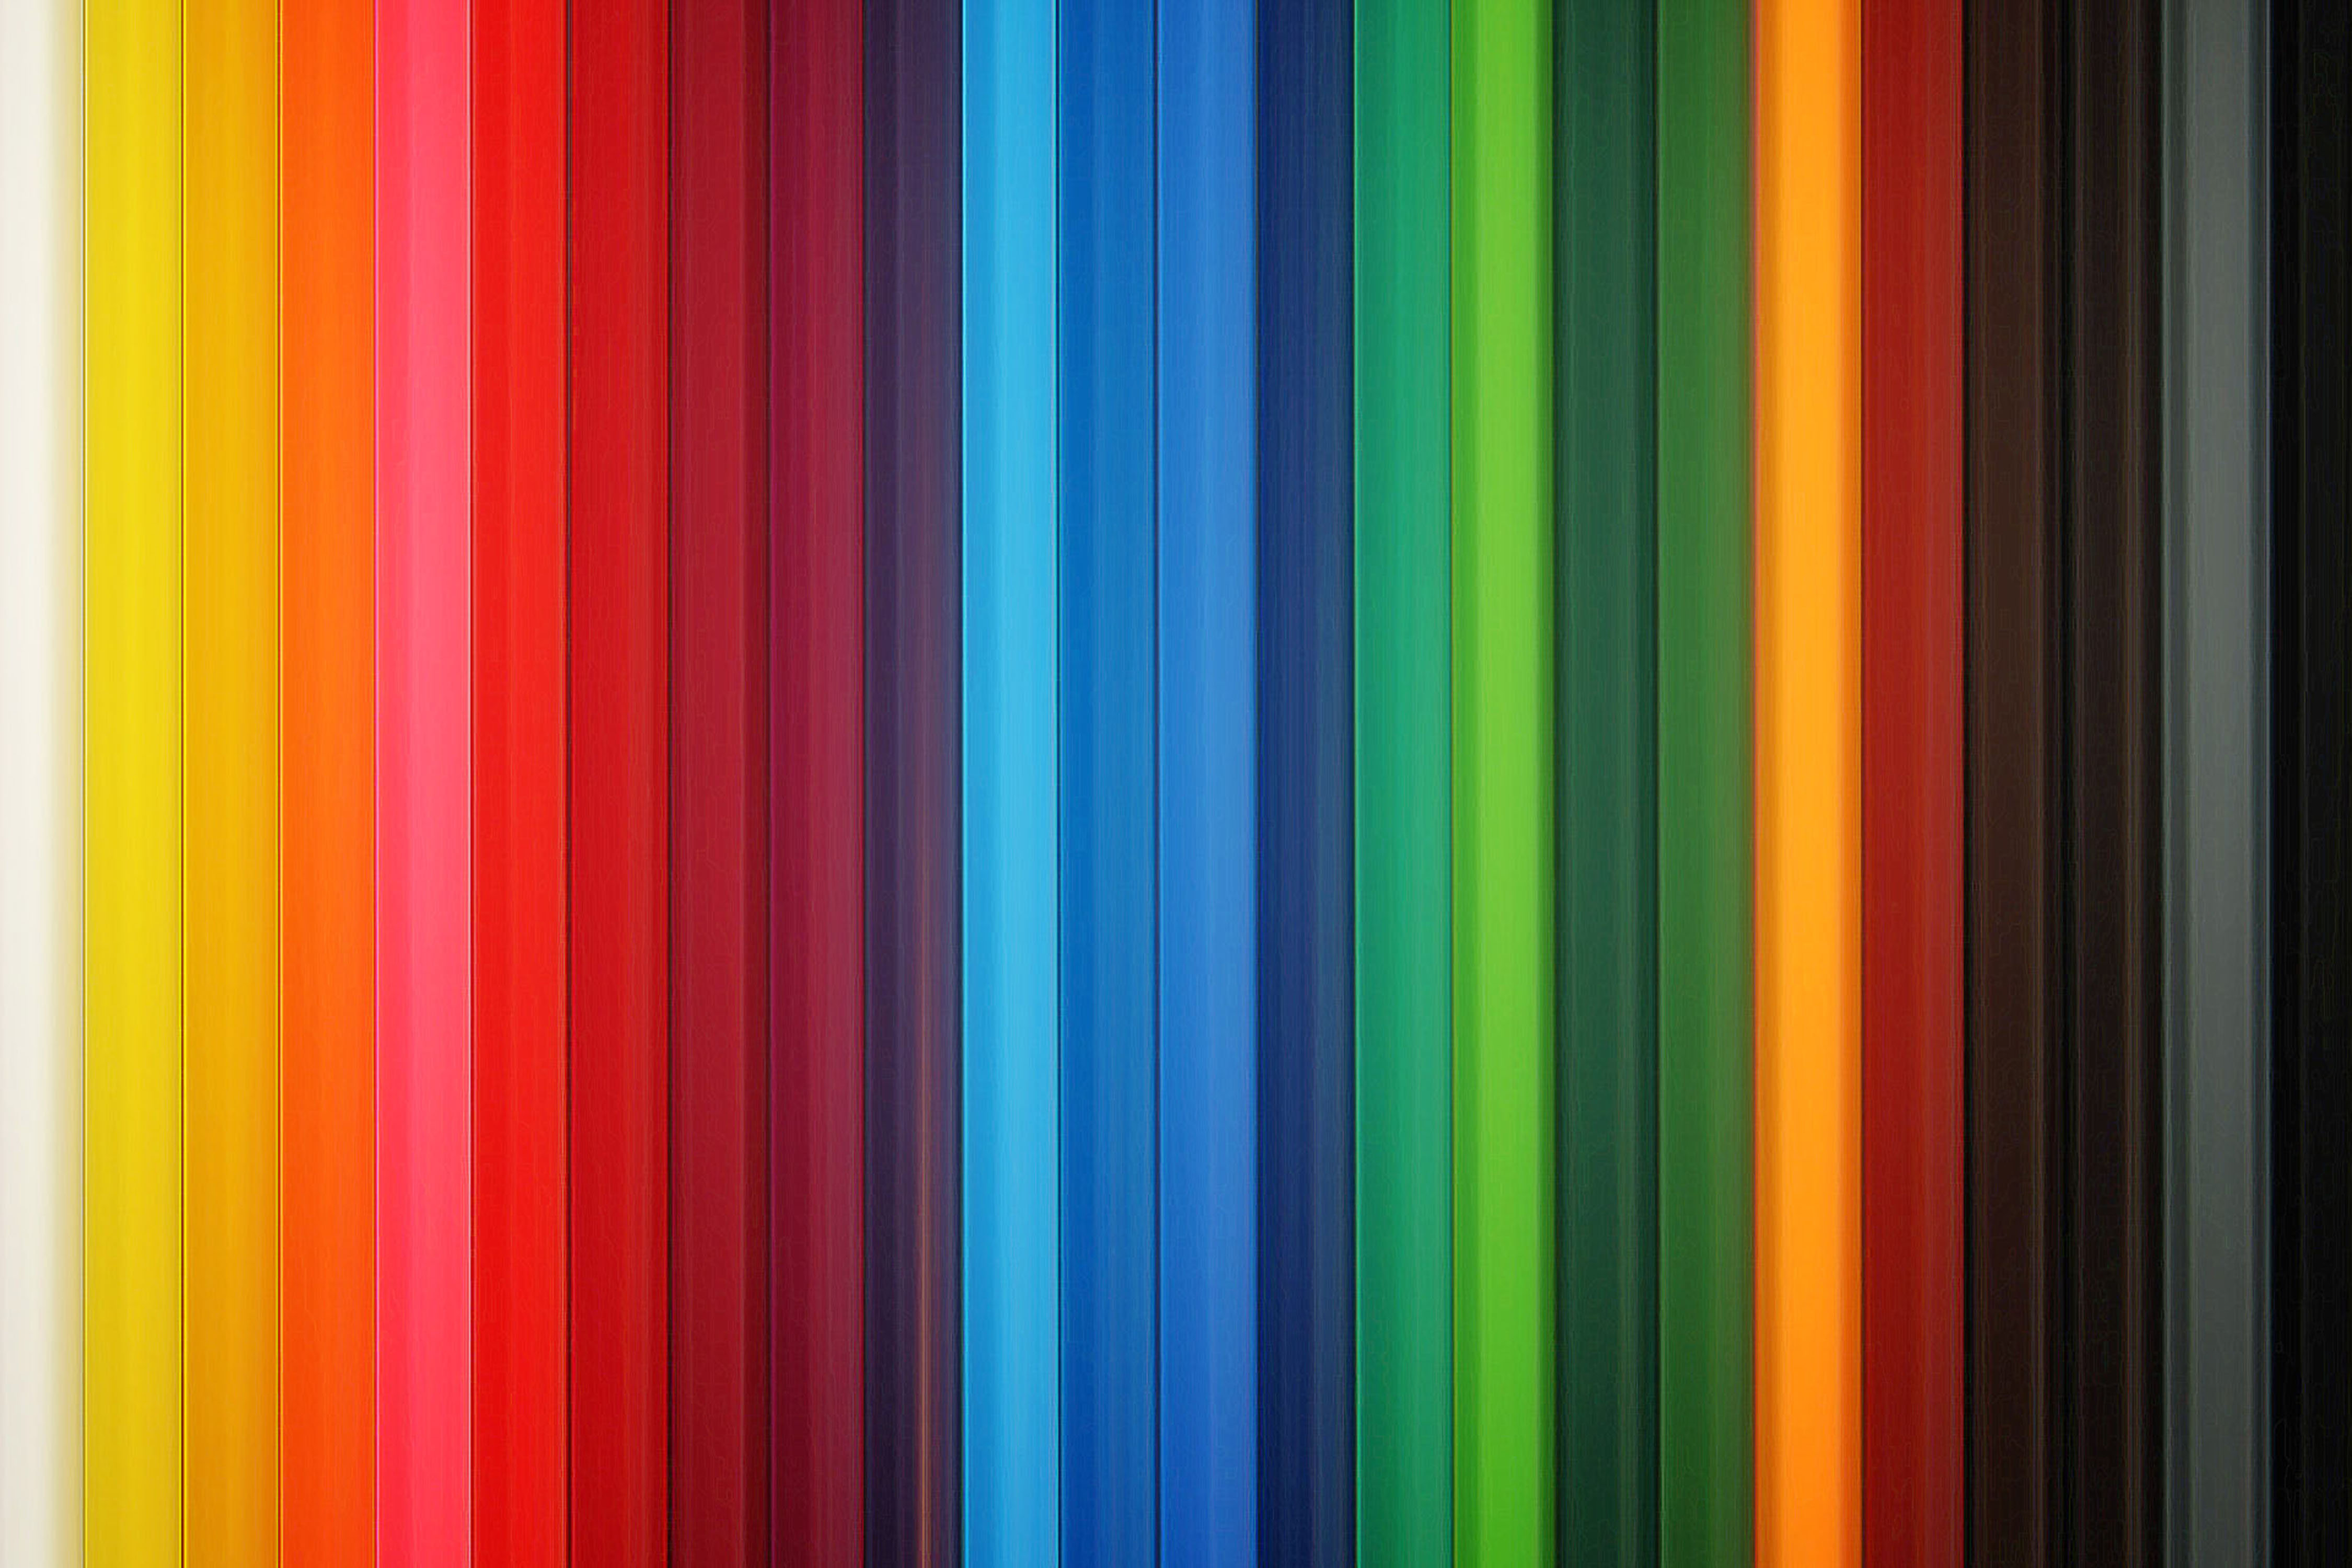 Images of Colors | 4500x3000